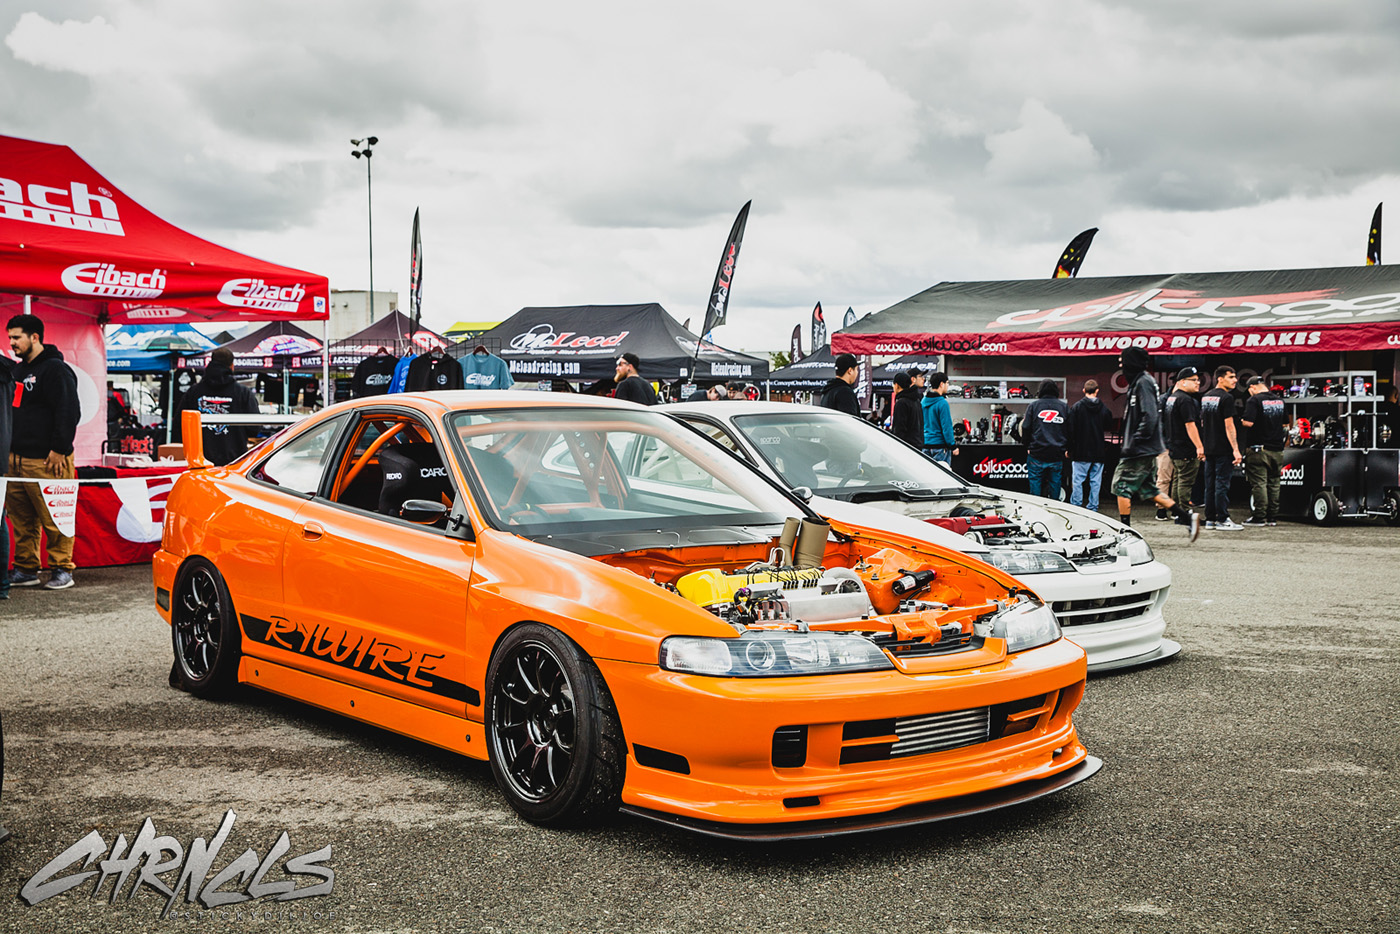 Eibach Honda Meet 2017 Coverage… Part 2…